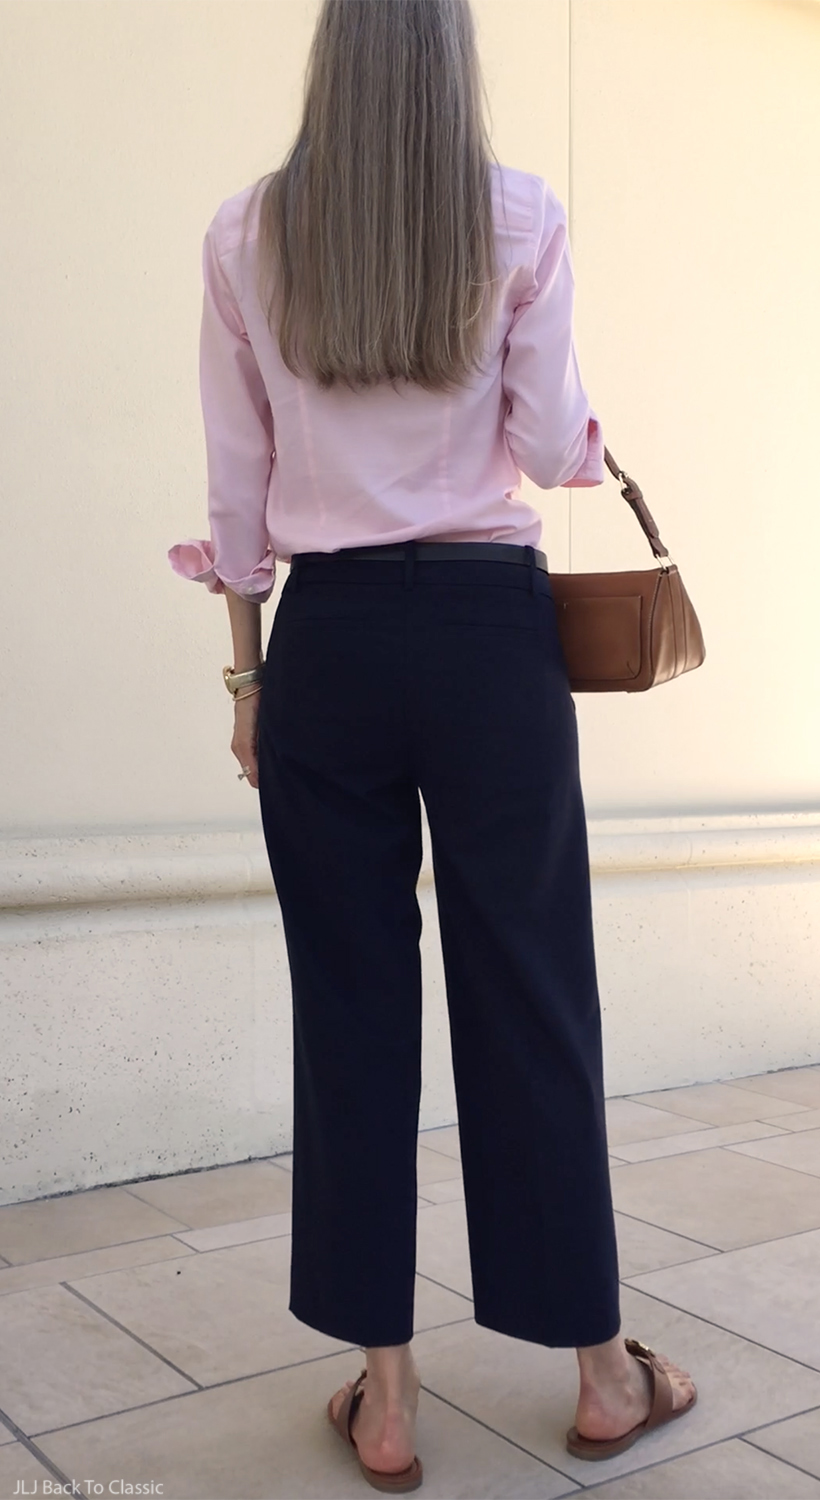 classic-ageless-fashion-cropped-talbots-wide-leg-pants-pink-button-up-shirt